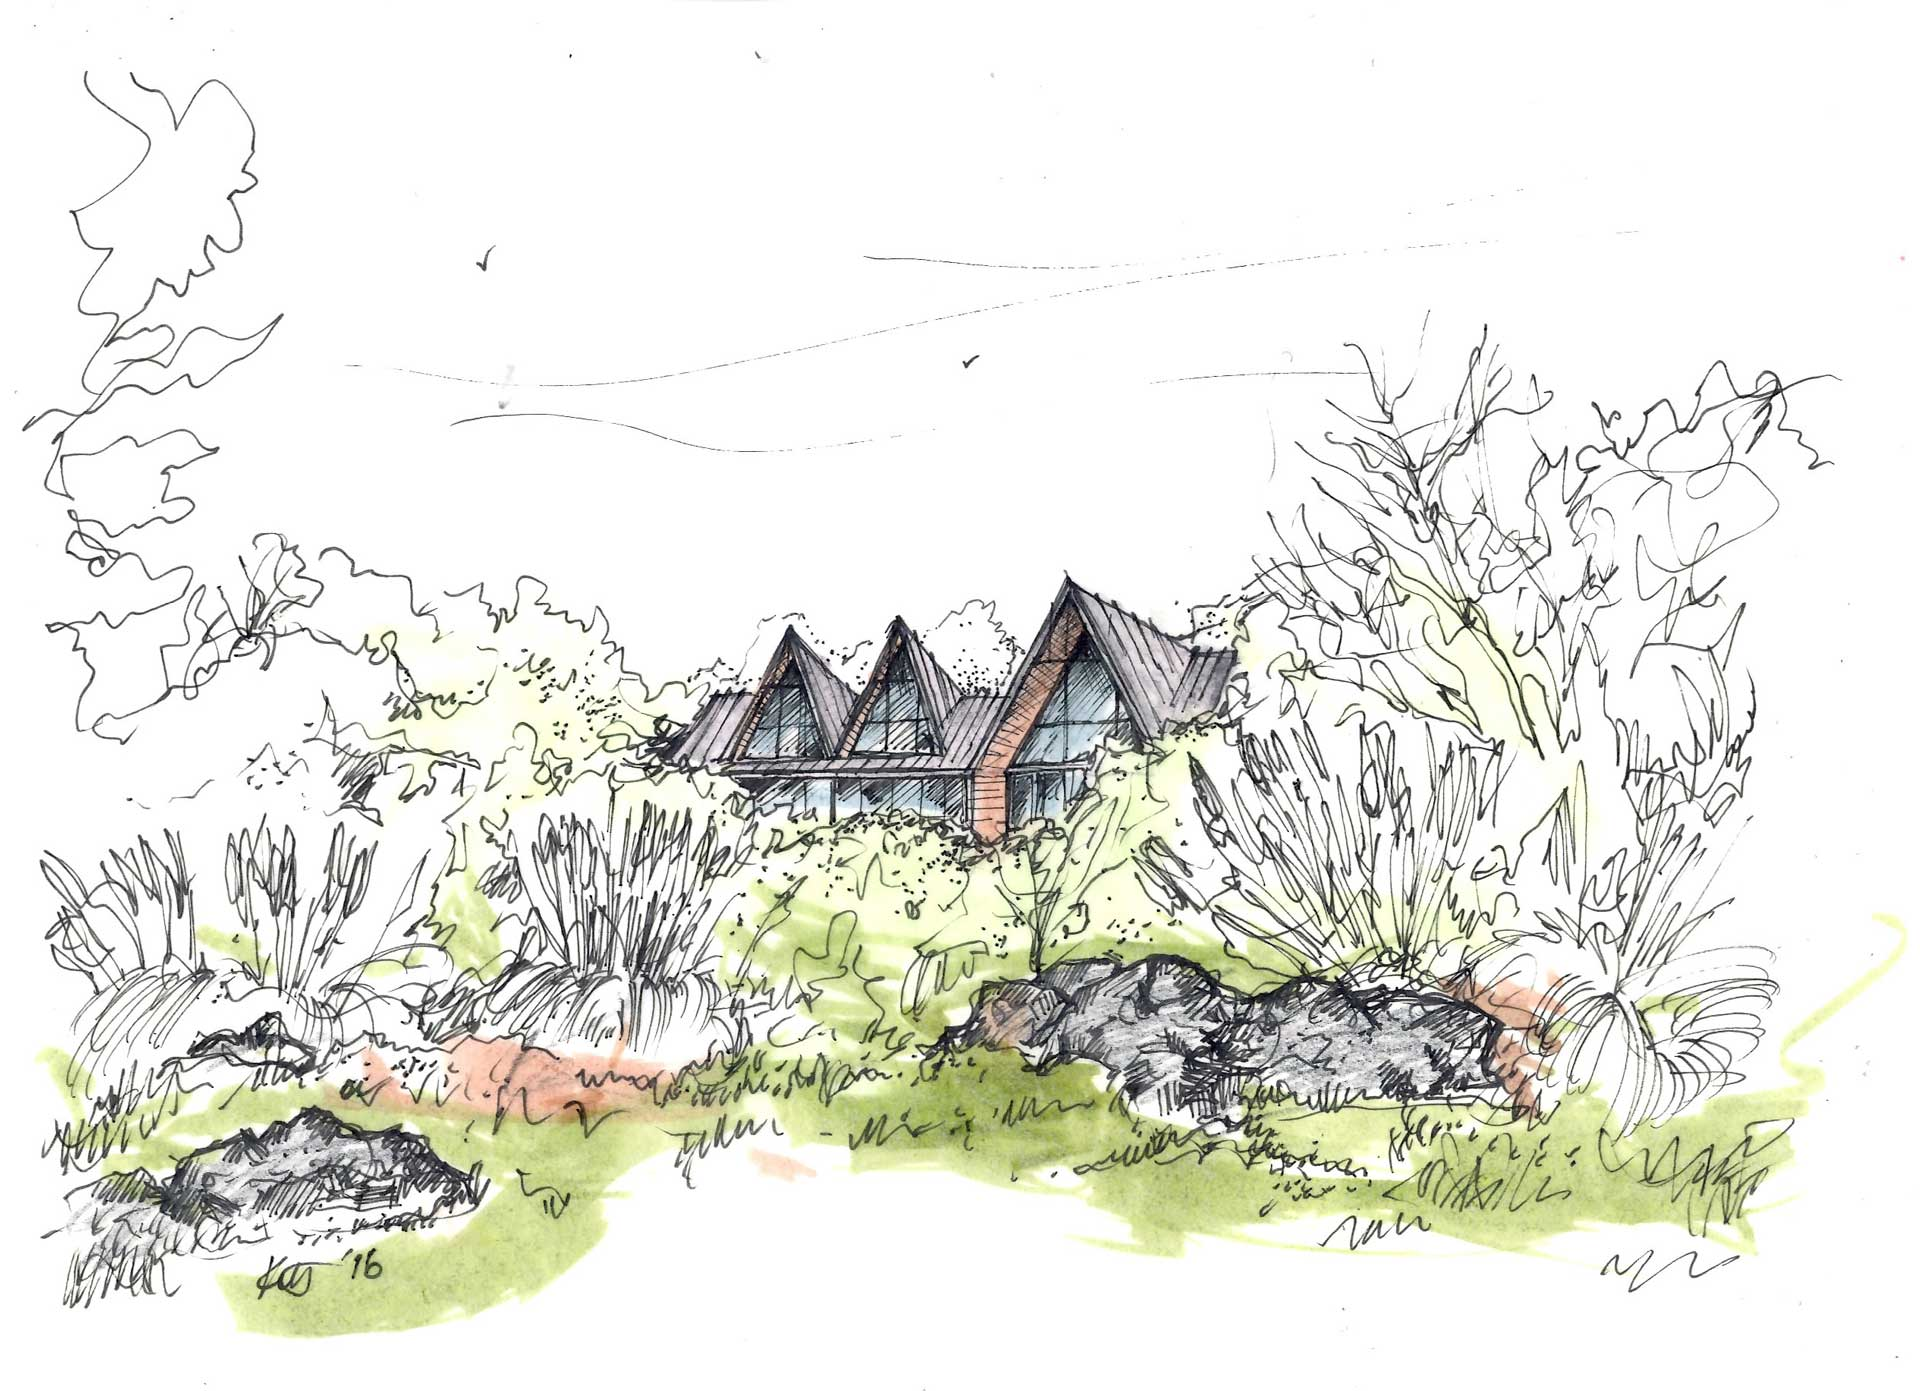 Siol Architects Tiburon Bluff Sketch and Watercolor